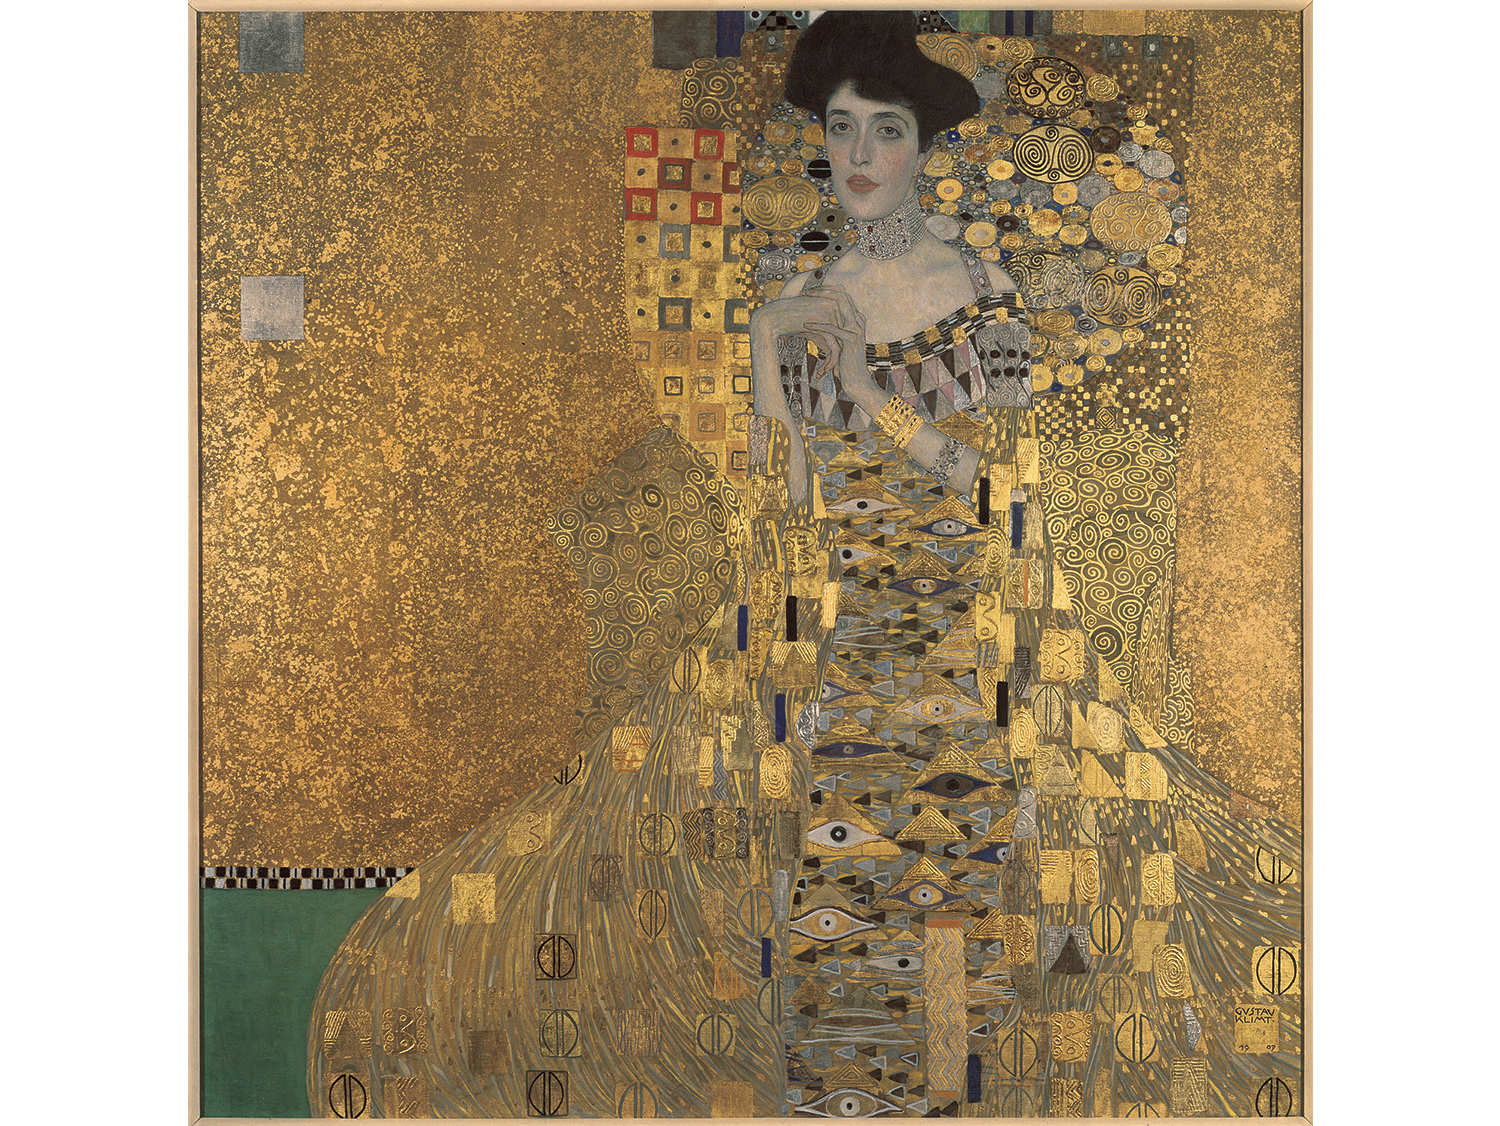 Gustav Klimt Adele Bloch-Bauer I, 1907. Oil, silver, and gold on canvas.